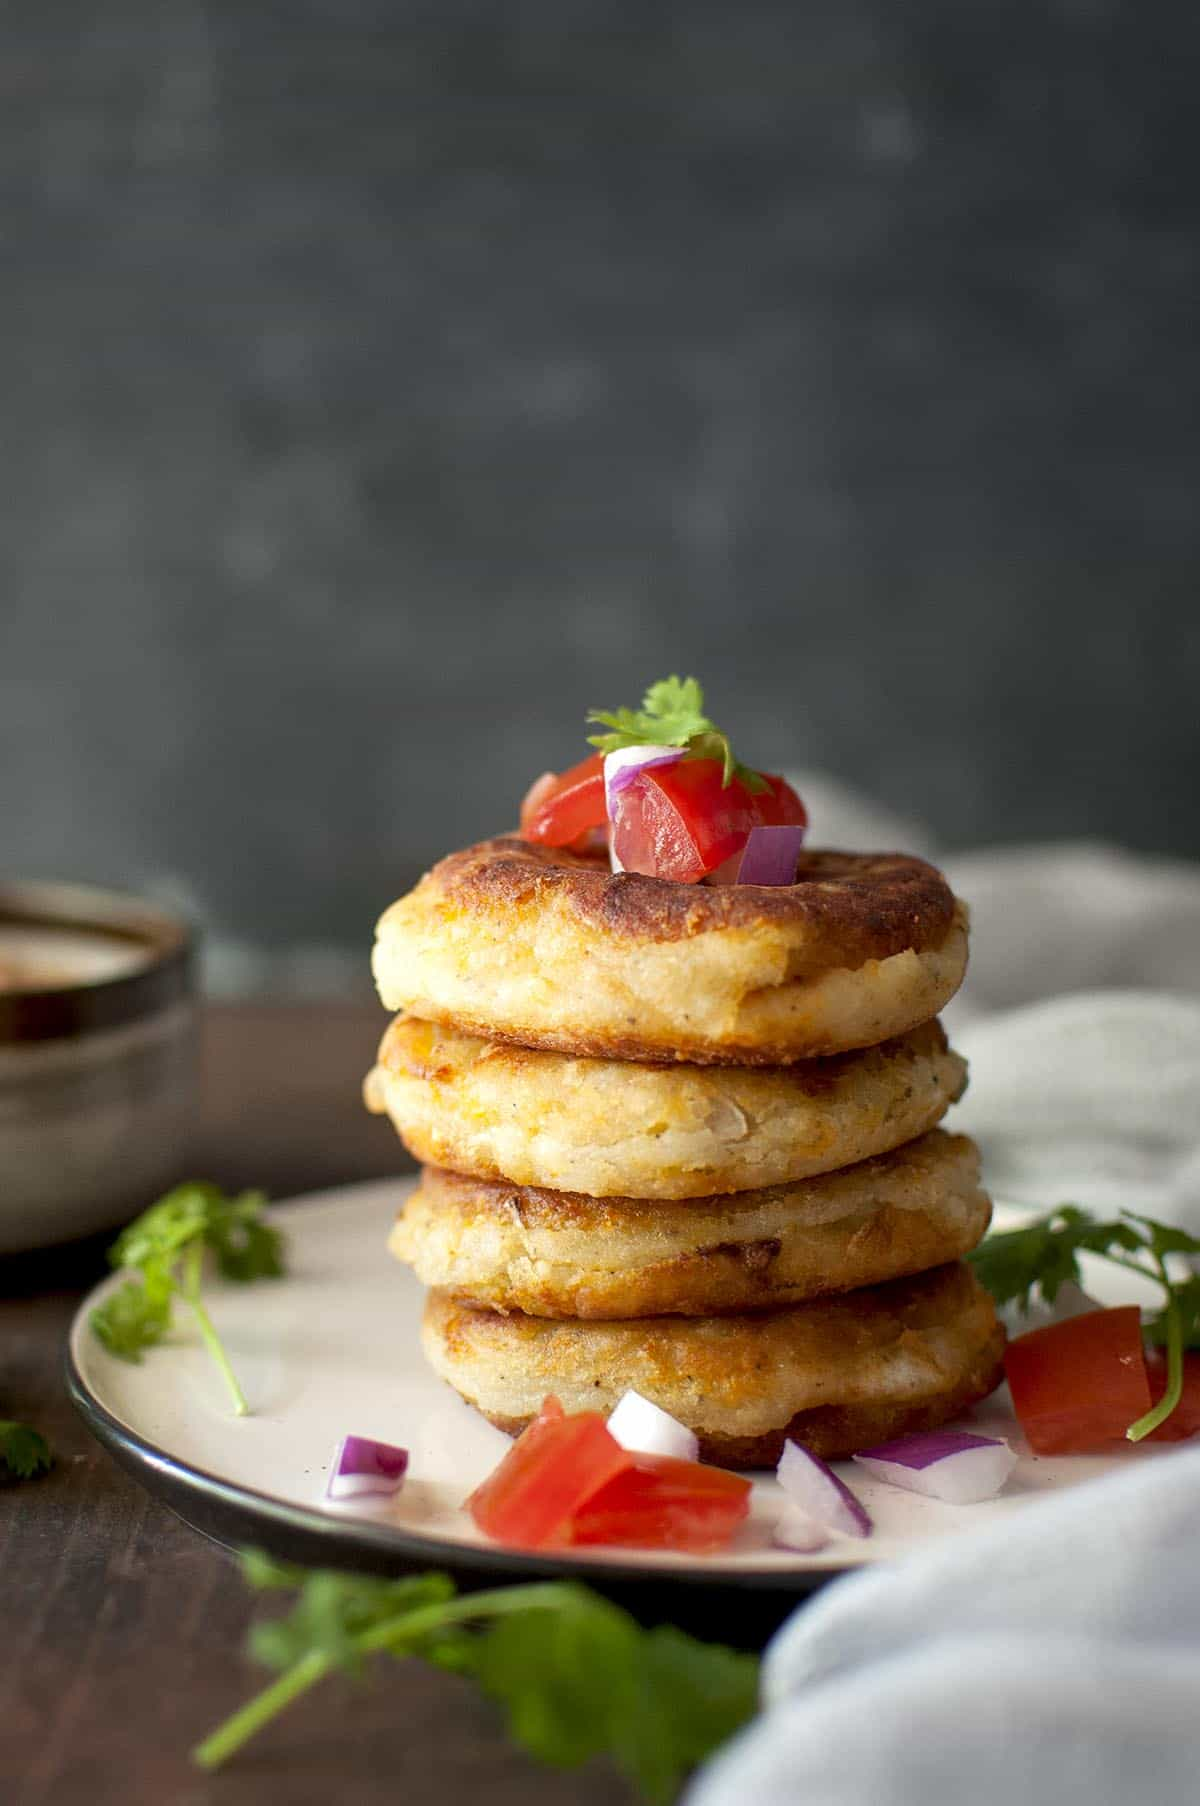 White plate with a stack of 4 Llapingachos topped with chopped tomatoes